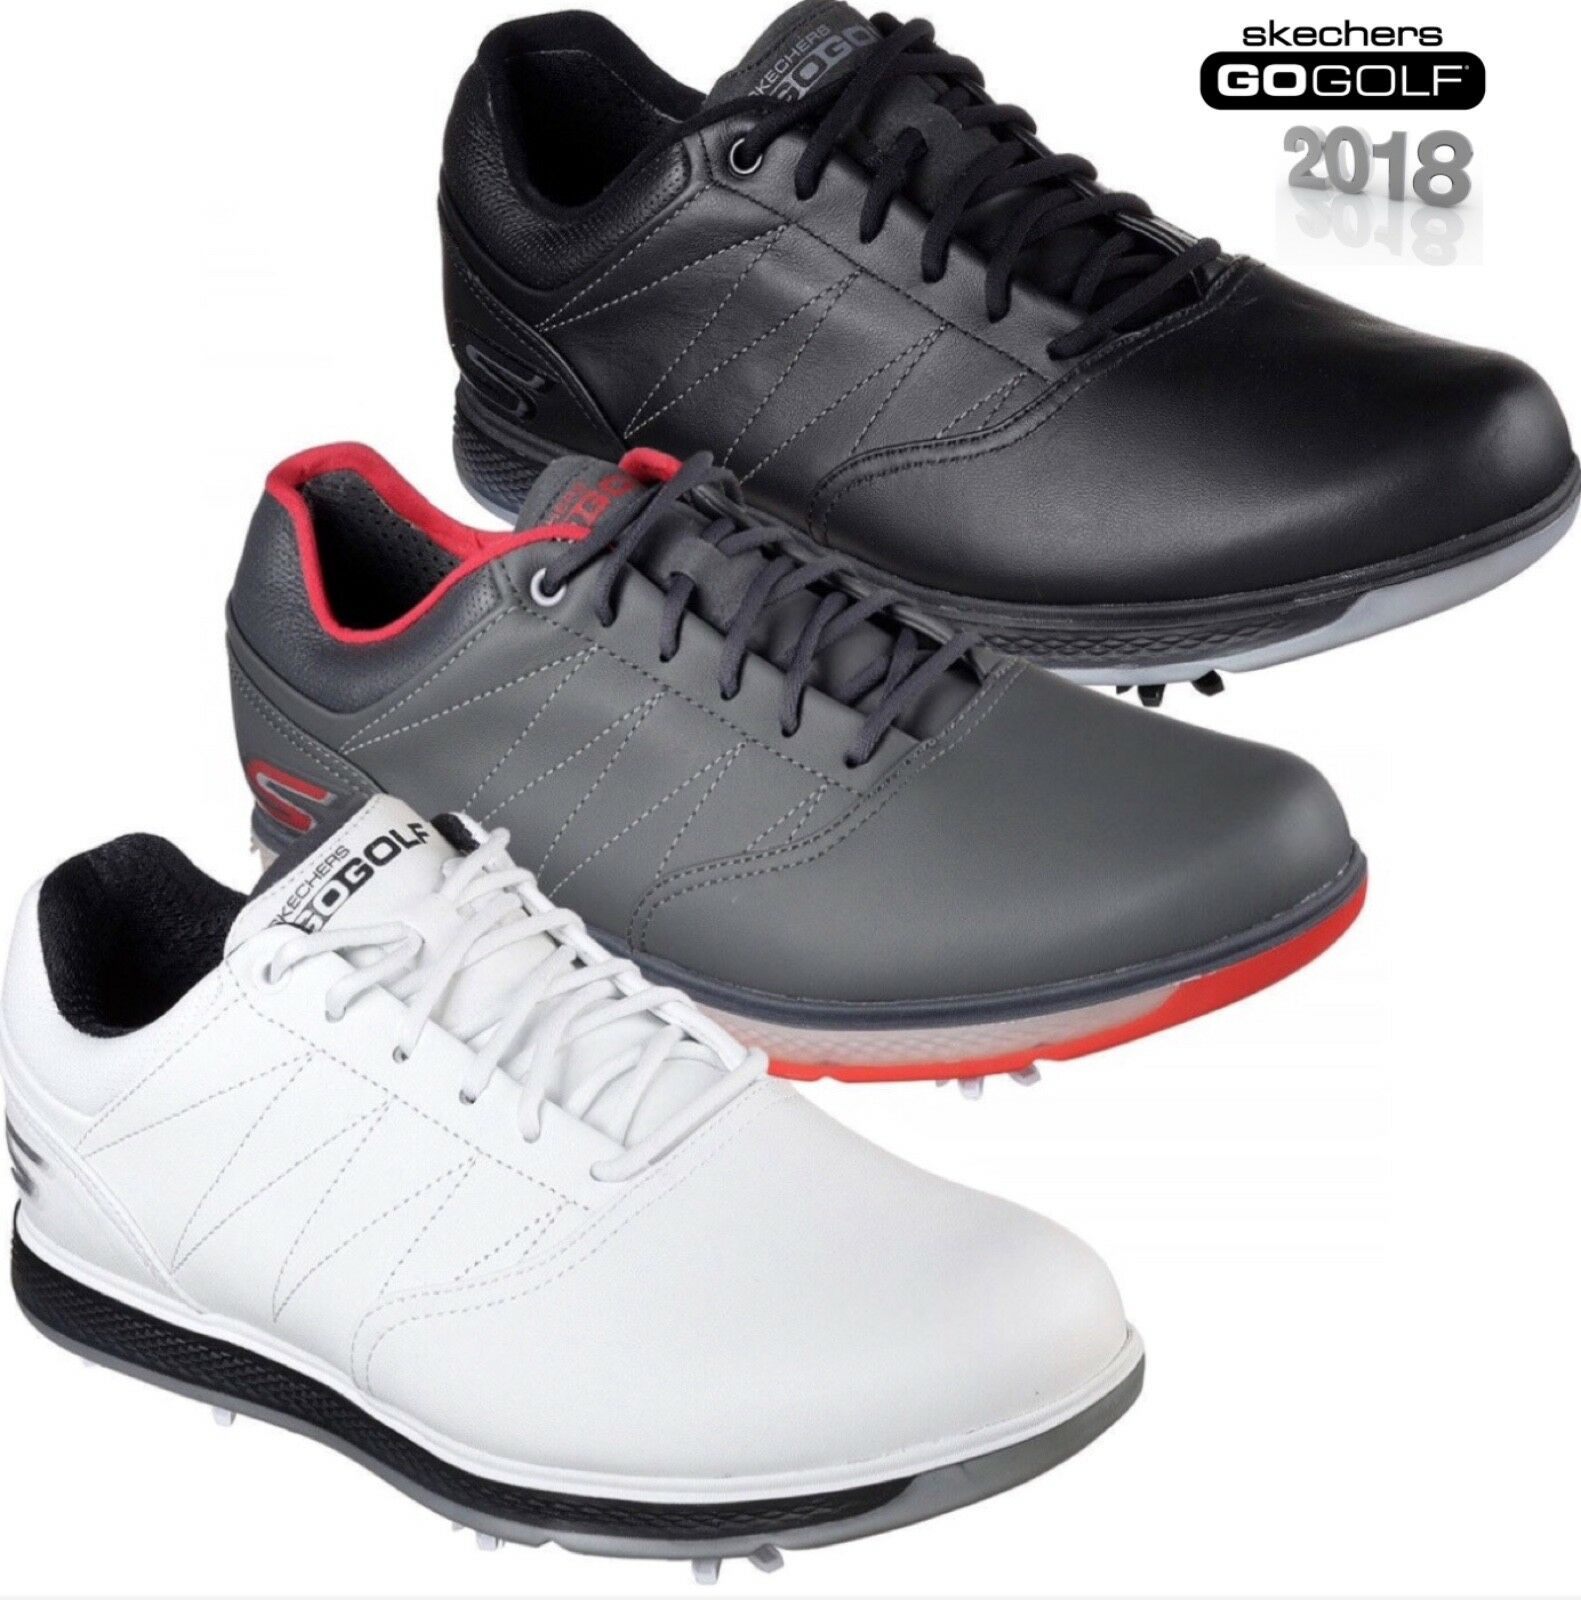 WATERPROOF SPIKE LEATHER GOLF SHOES